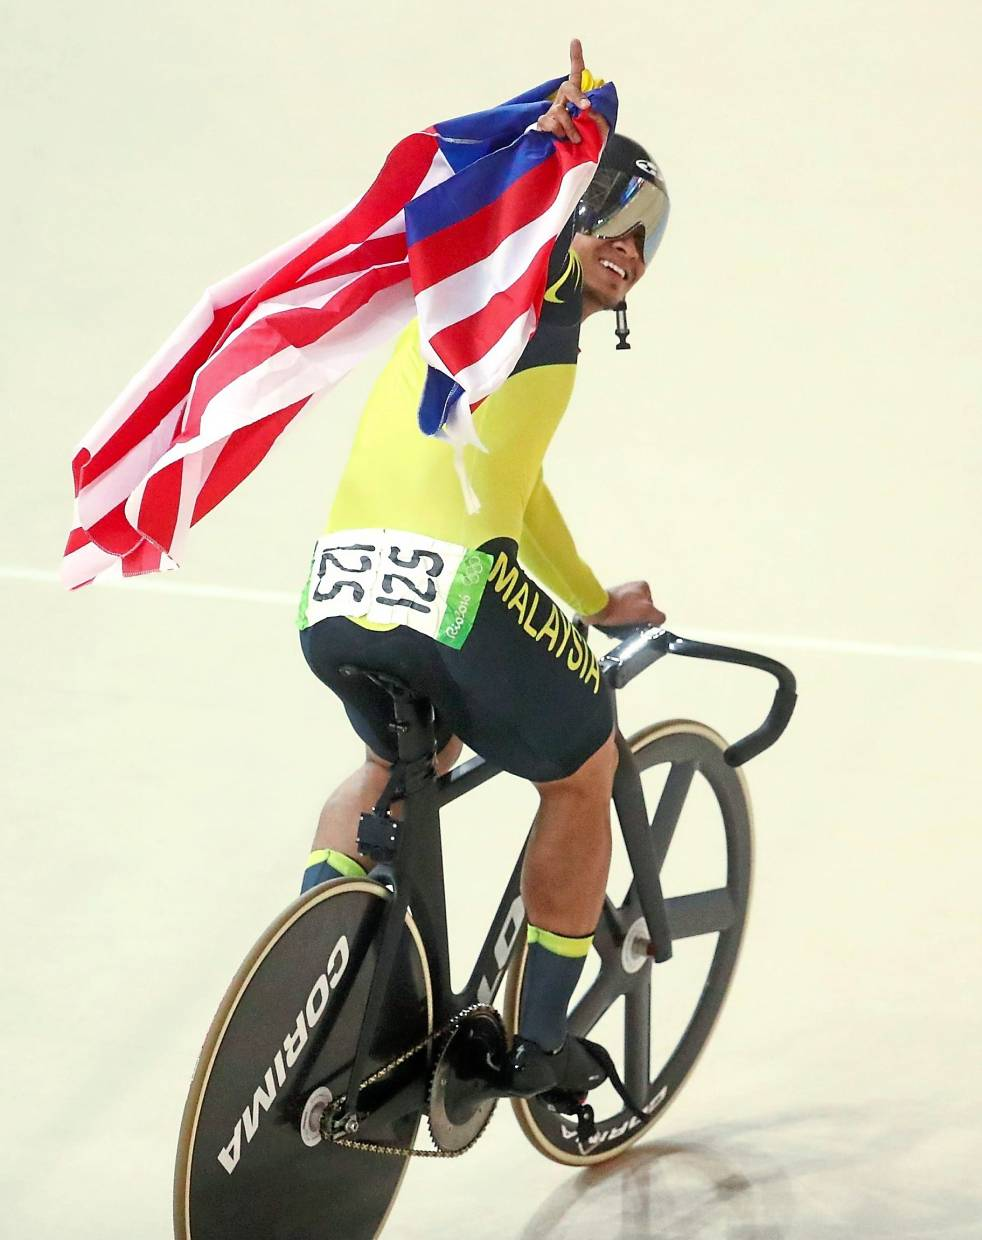 Looking for a boost: Azizulhasni Awang after his bronze medal win at the Rio Olympics.